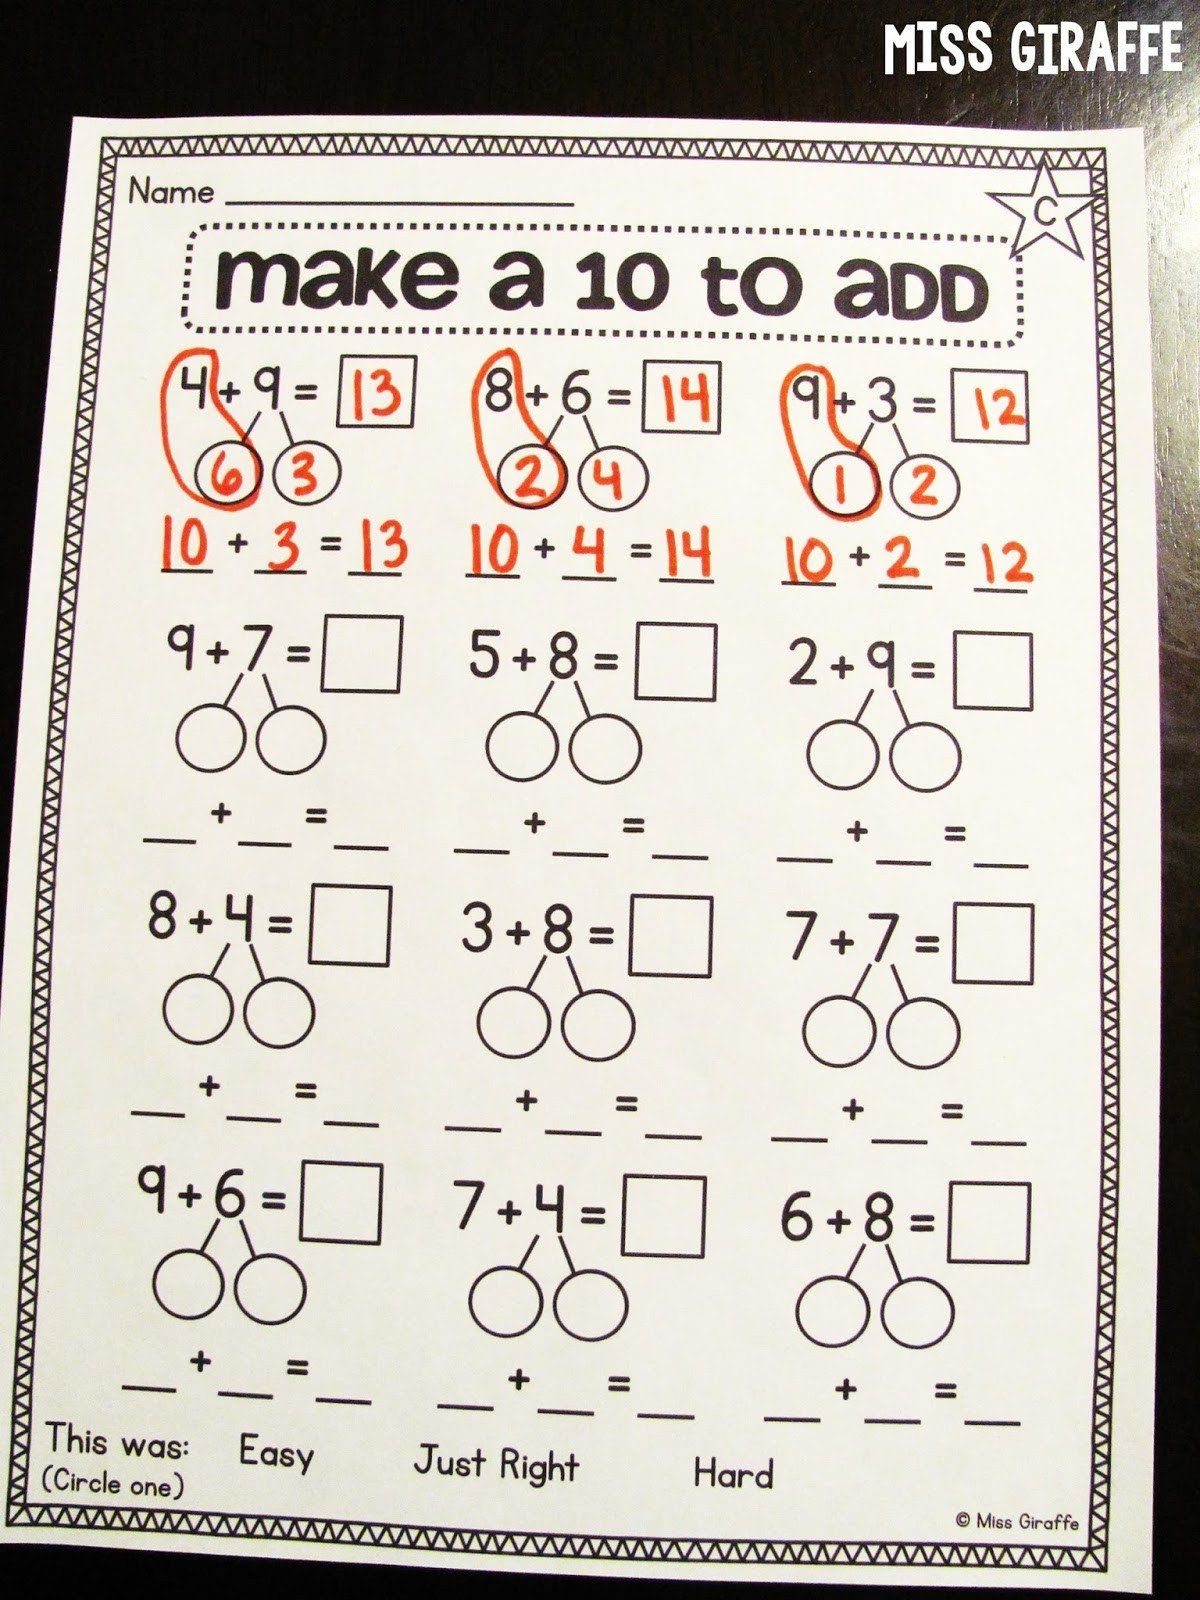 hight resolution of Decomposing Numbers Worksheet 1 10   Printable Worksheets and Activities  for Teachers